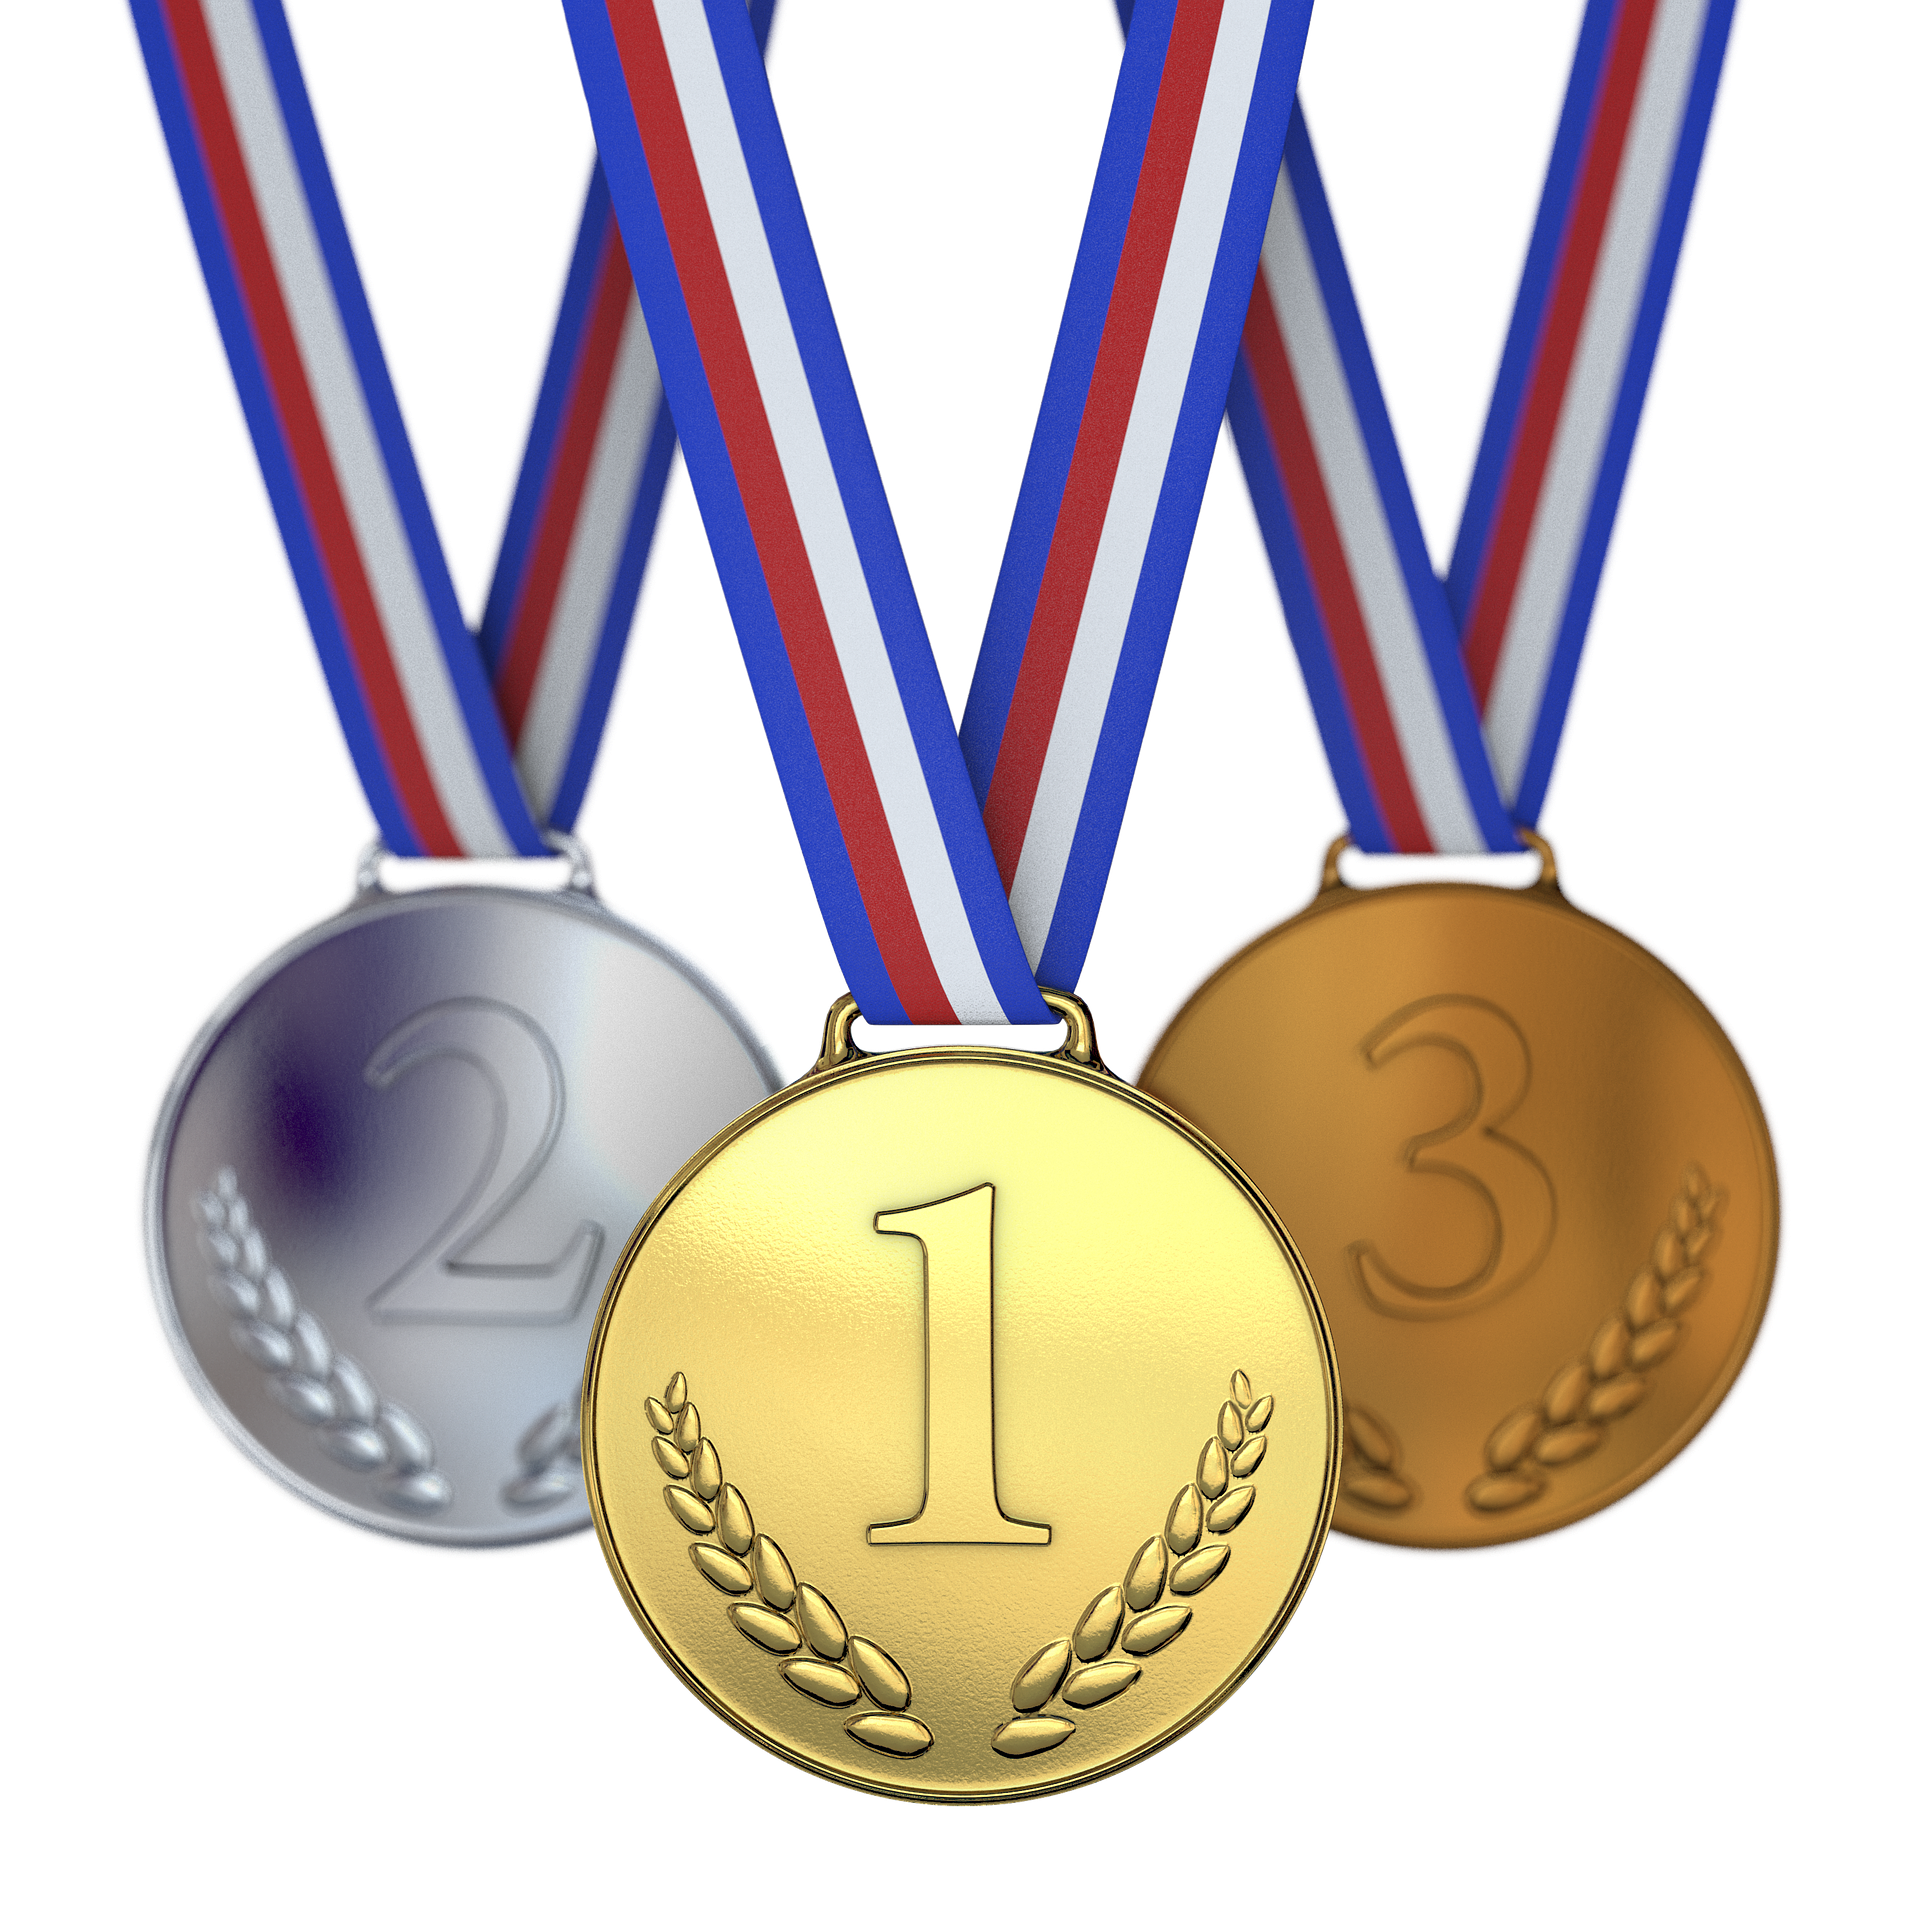 Become a Gold Medal Saver